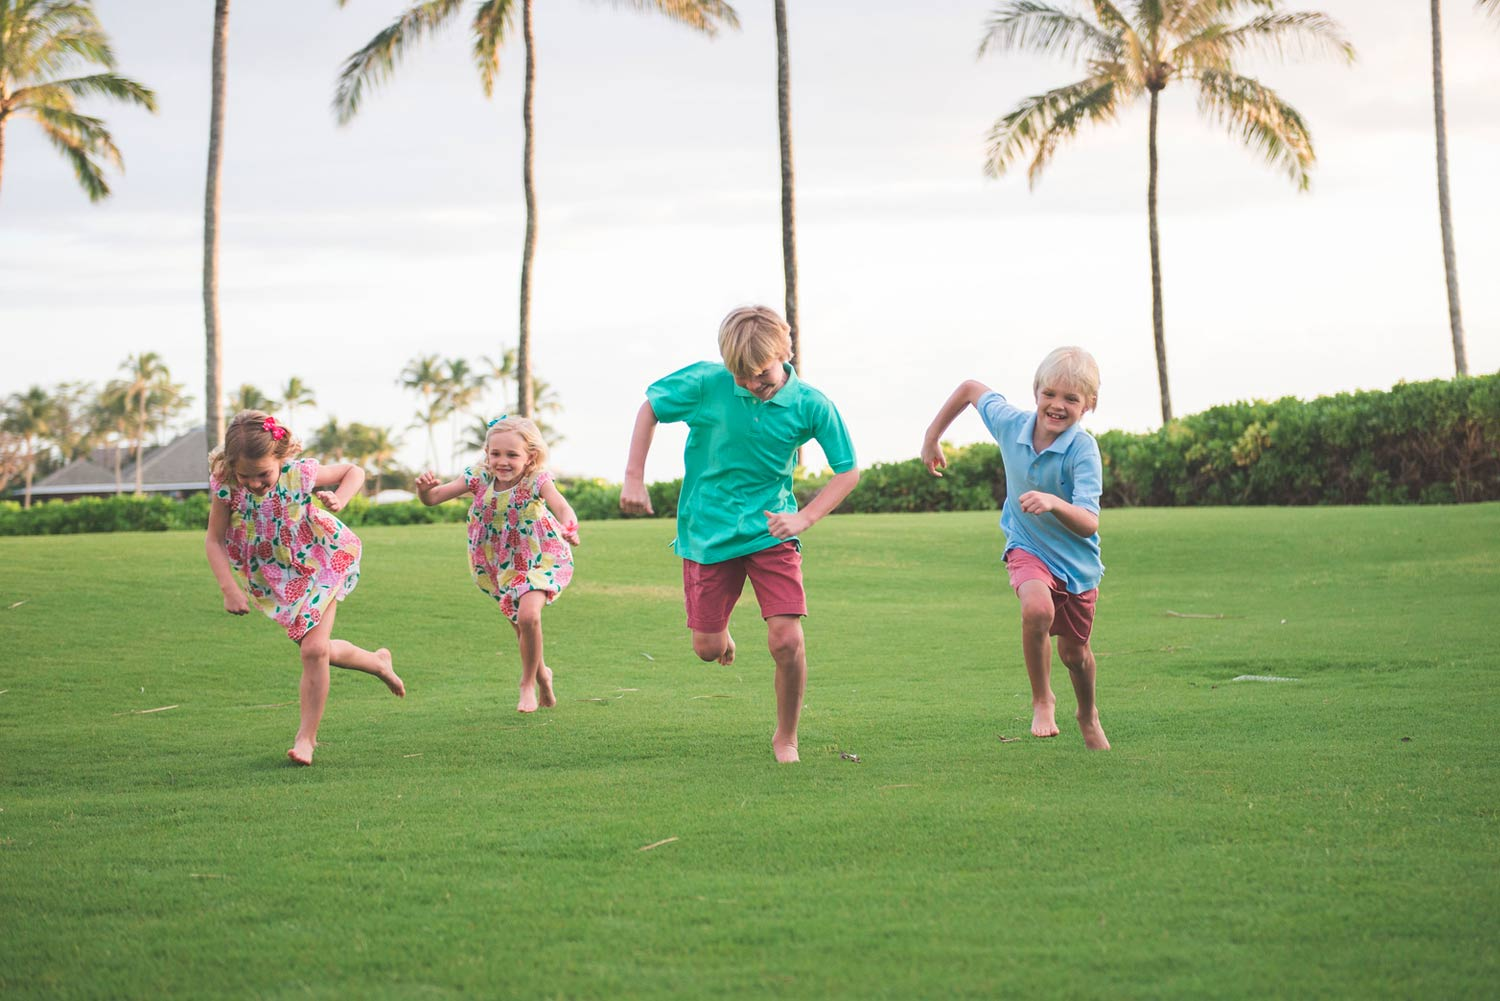 fun-family-photos-hawaii.jpg